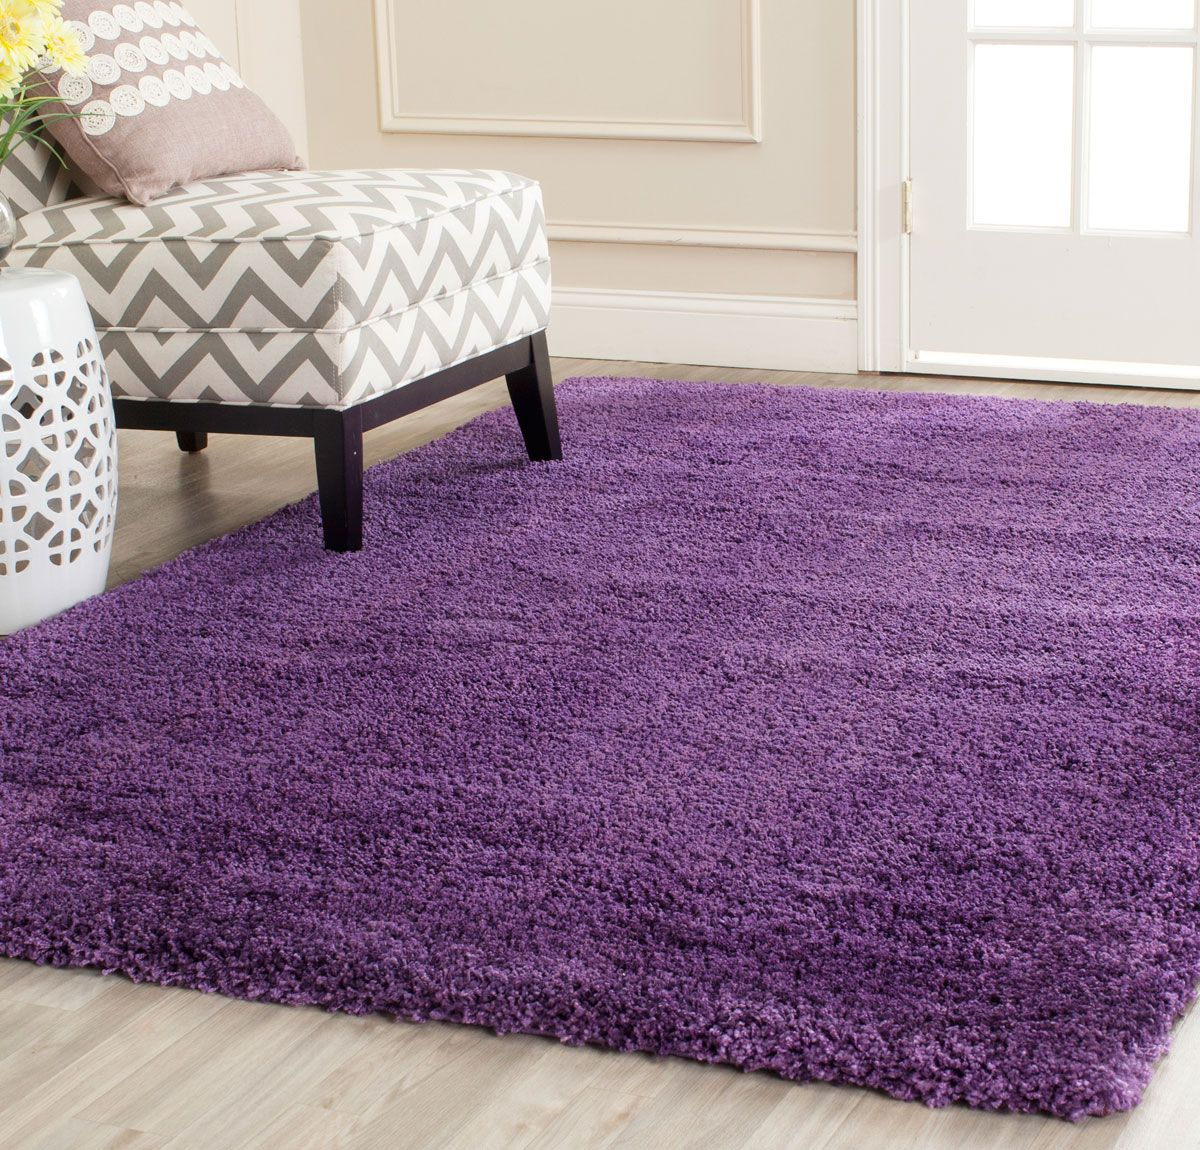 Purple Shag Milan Shags Safavieh Com Purple Rug Purple Area Rugs Solid Rugs